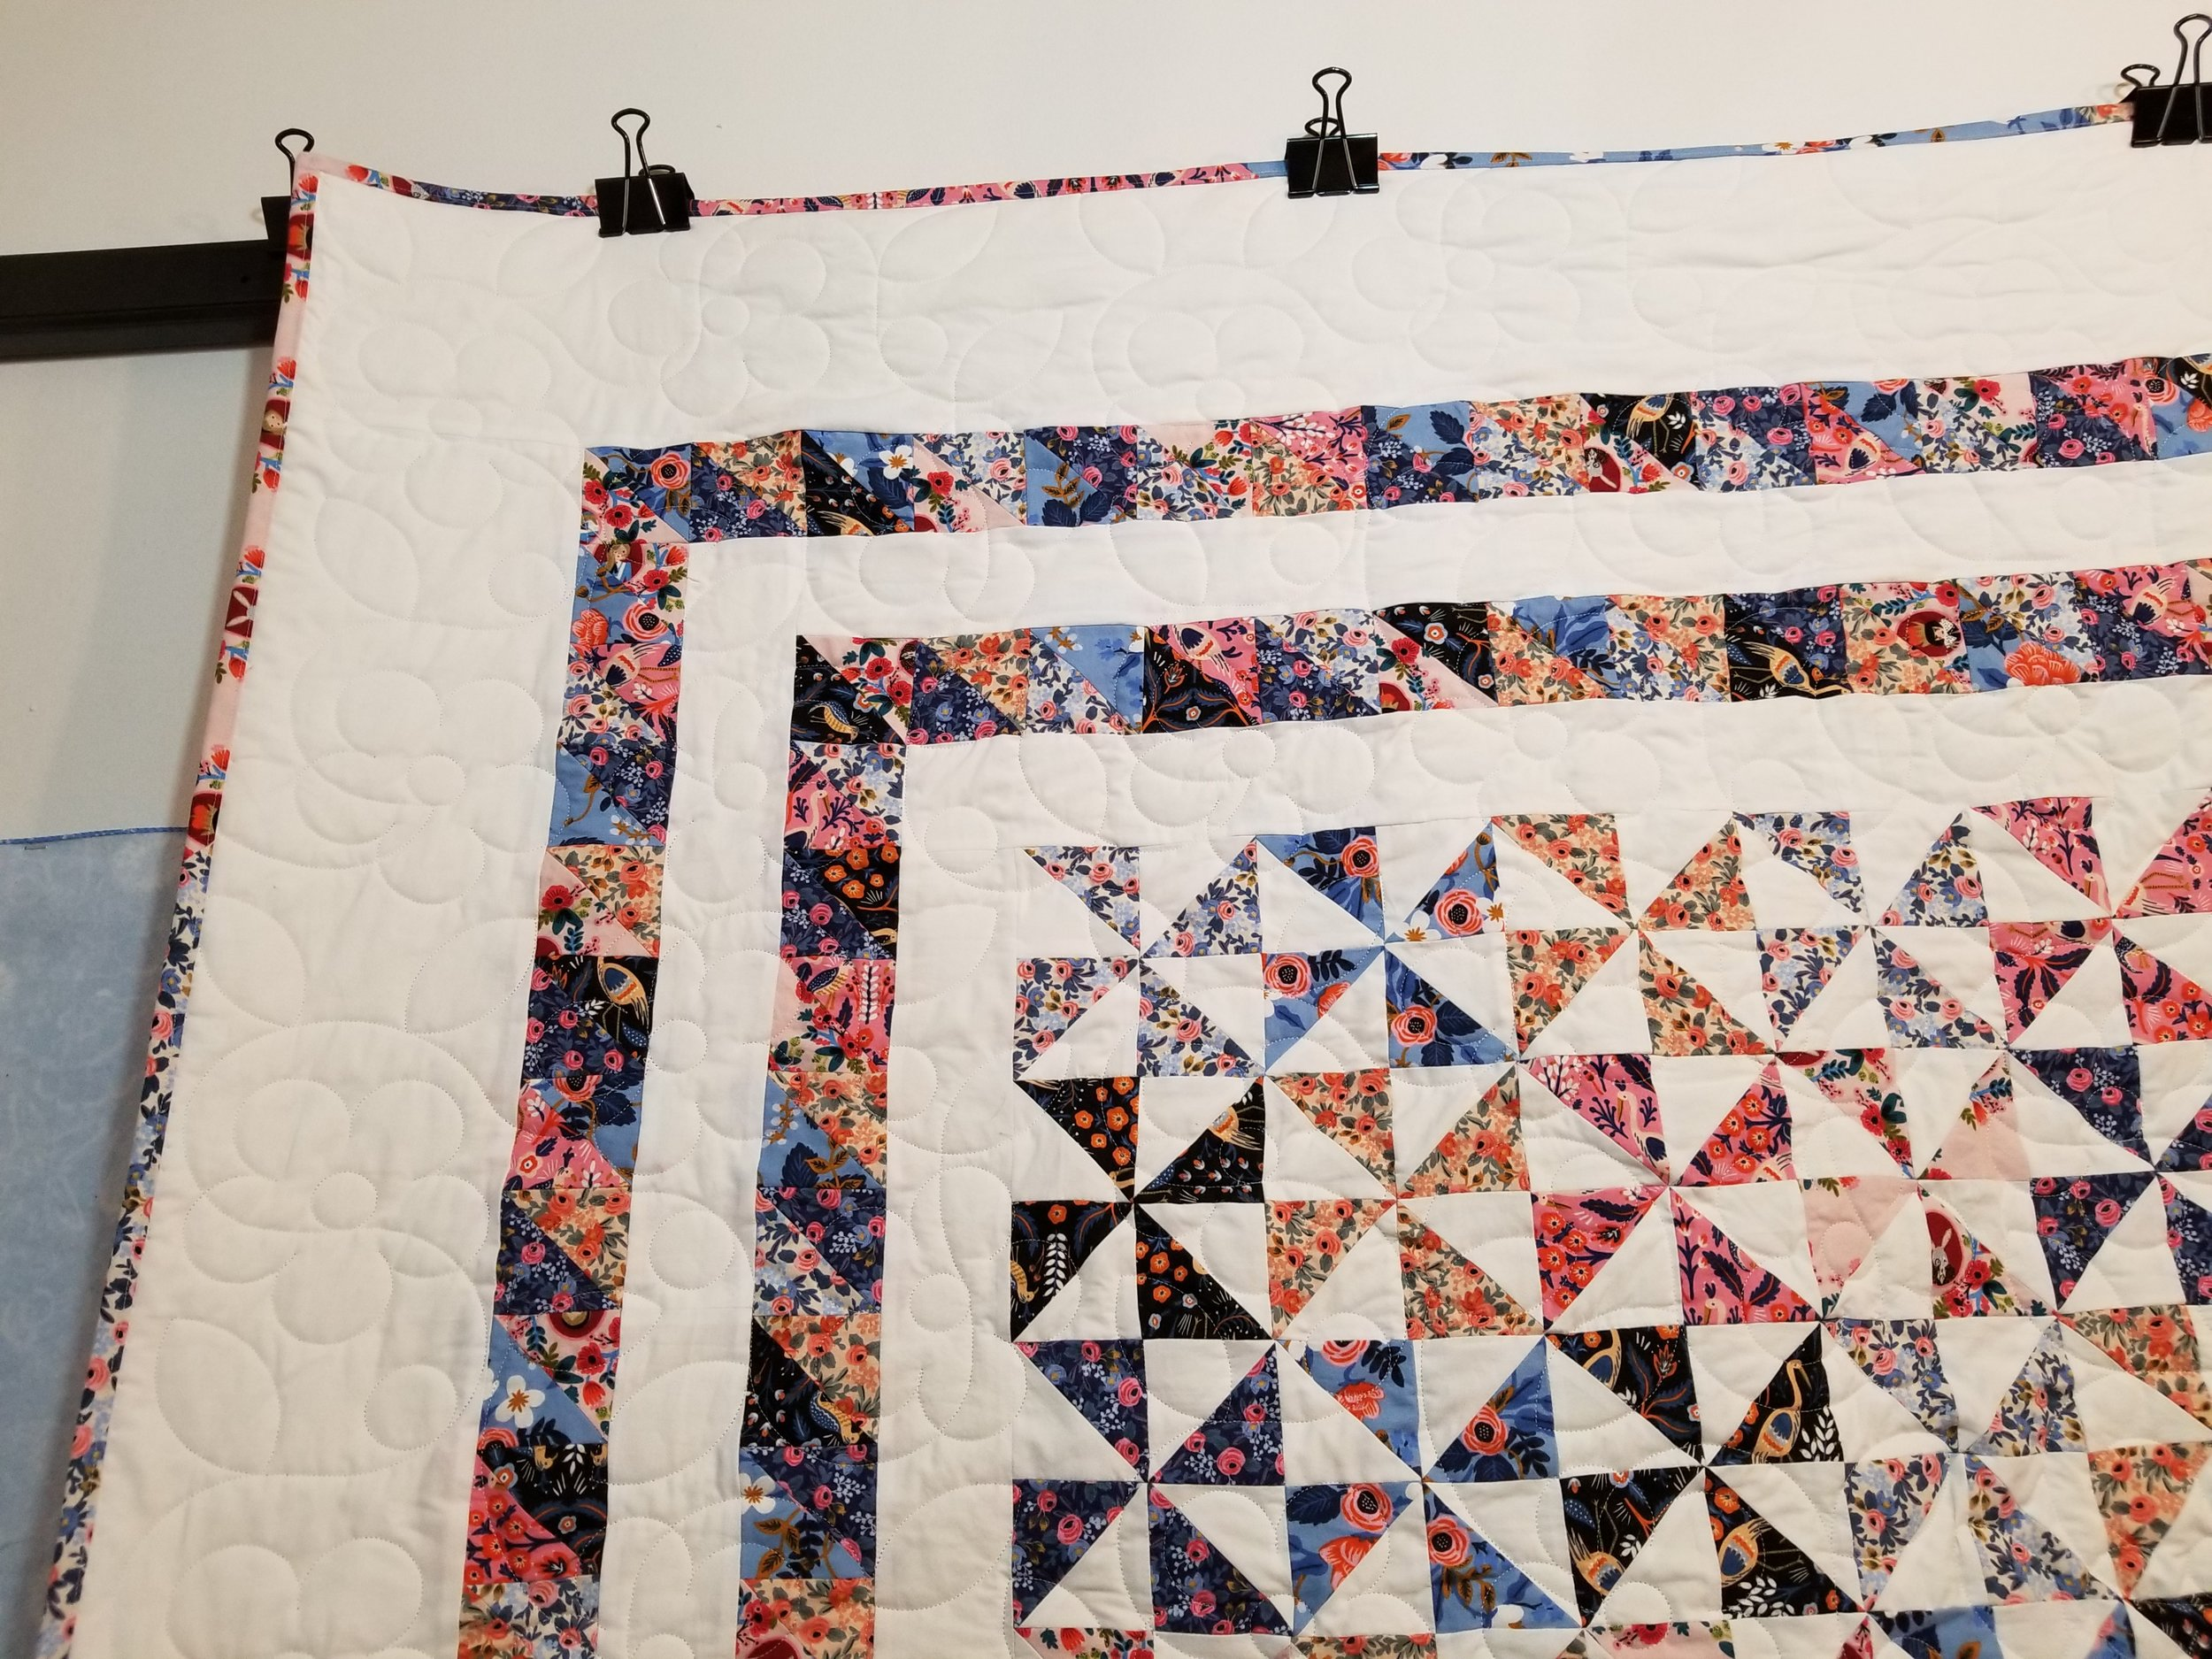 There are 109,035 stitches quilted in this beauty.